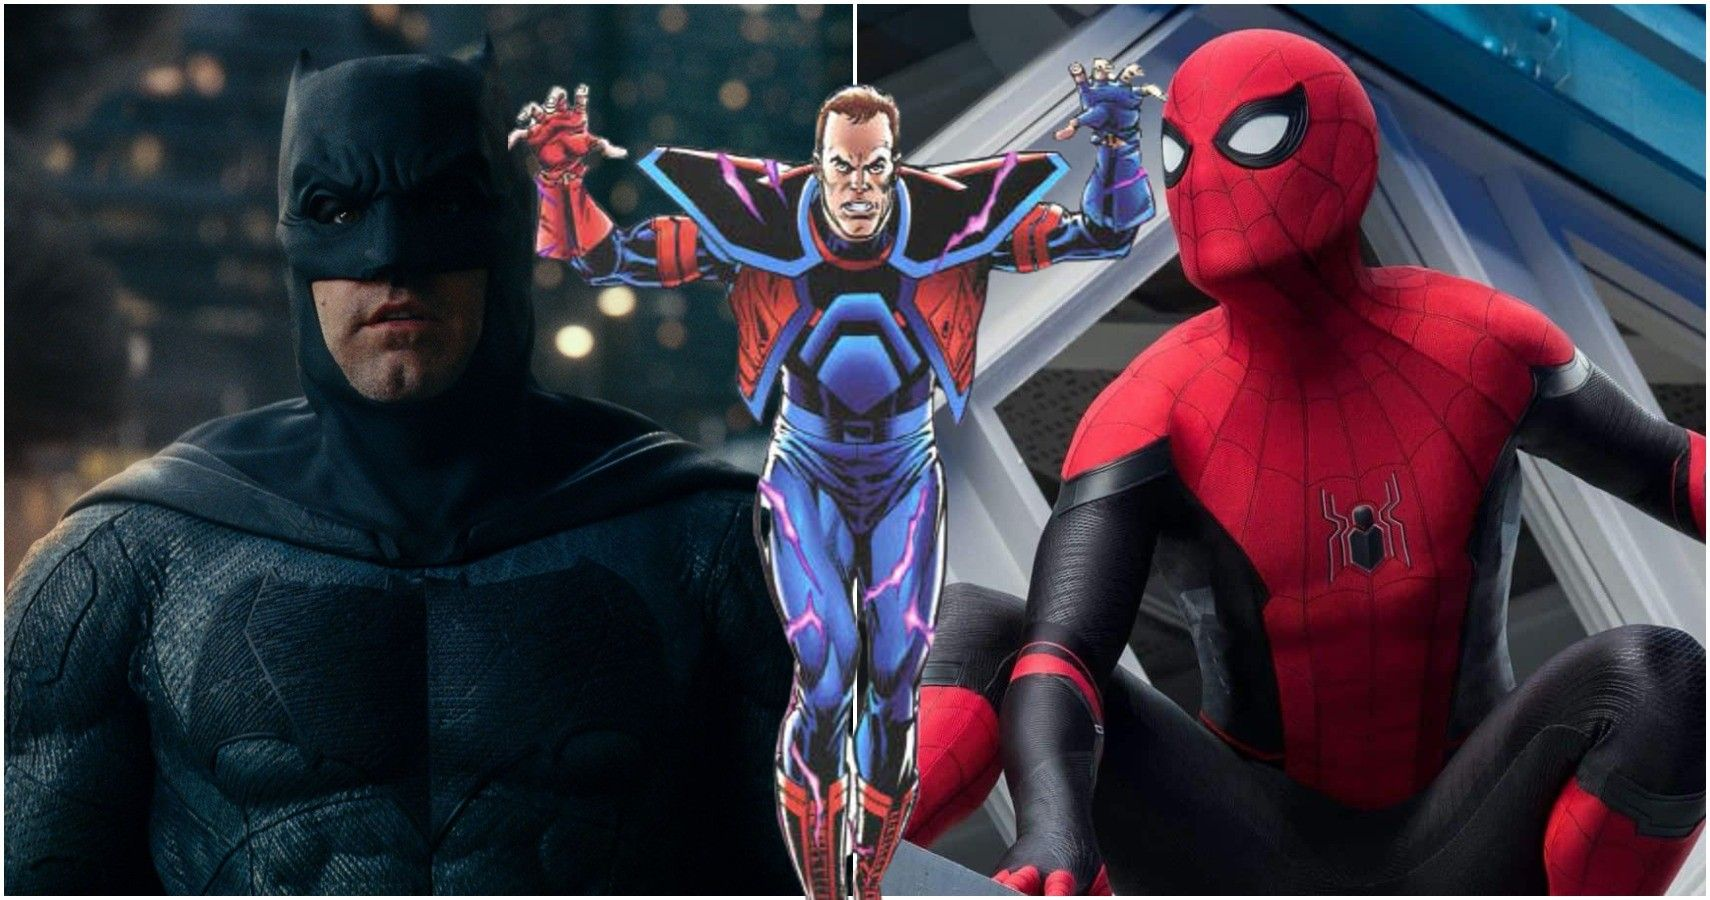 Marvel And DC Are Spoiled For Choice Should A Big Screen Crossover Ever Happen